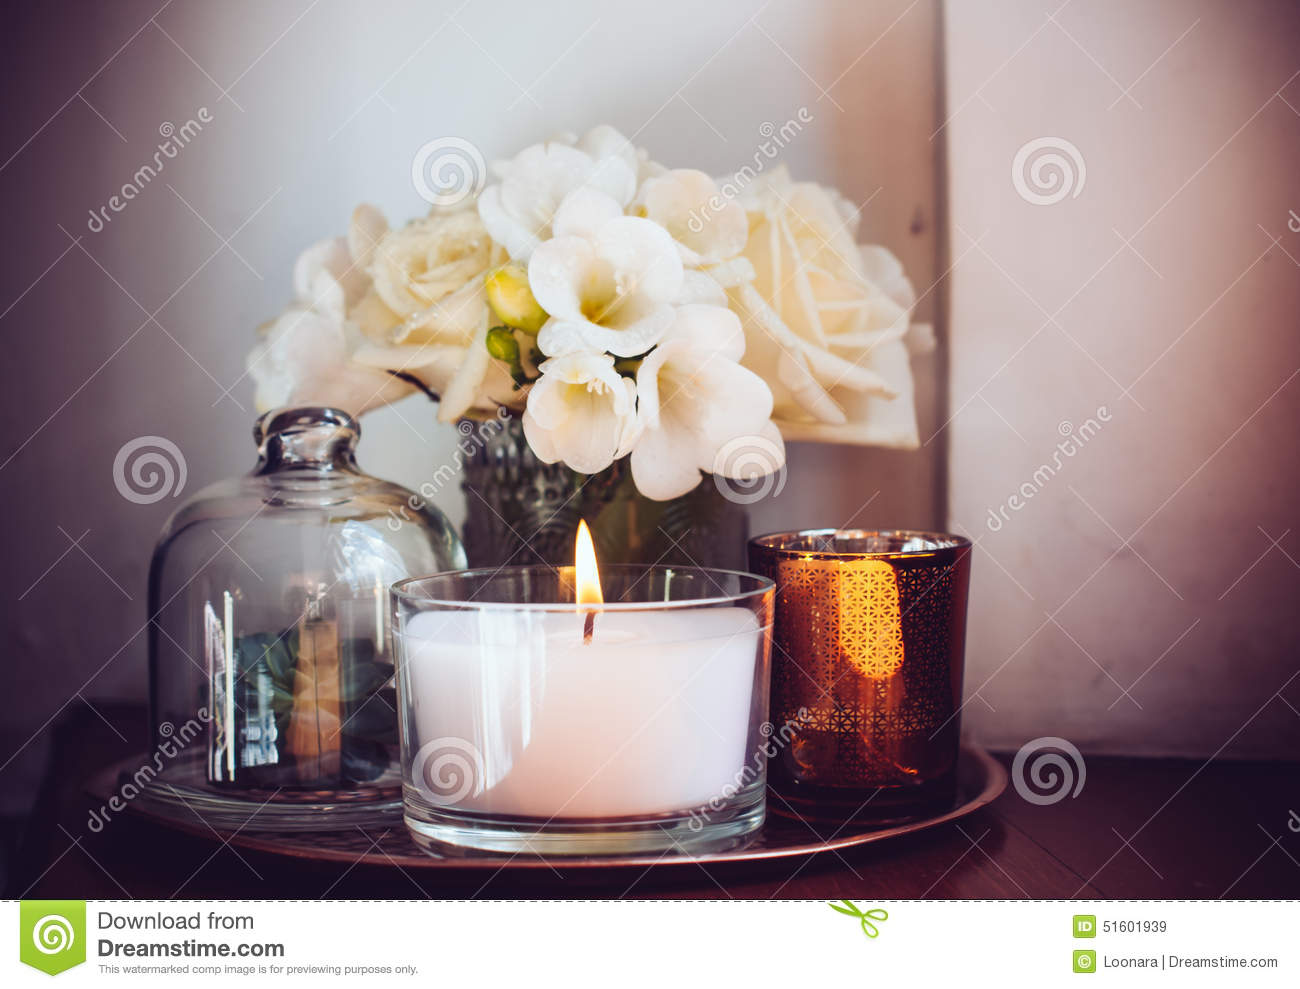 Home Decor On A Table Stock Photo Image 51601939